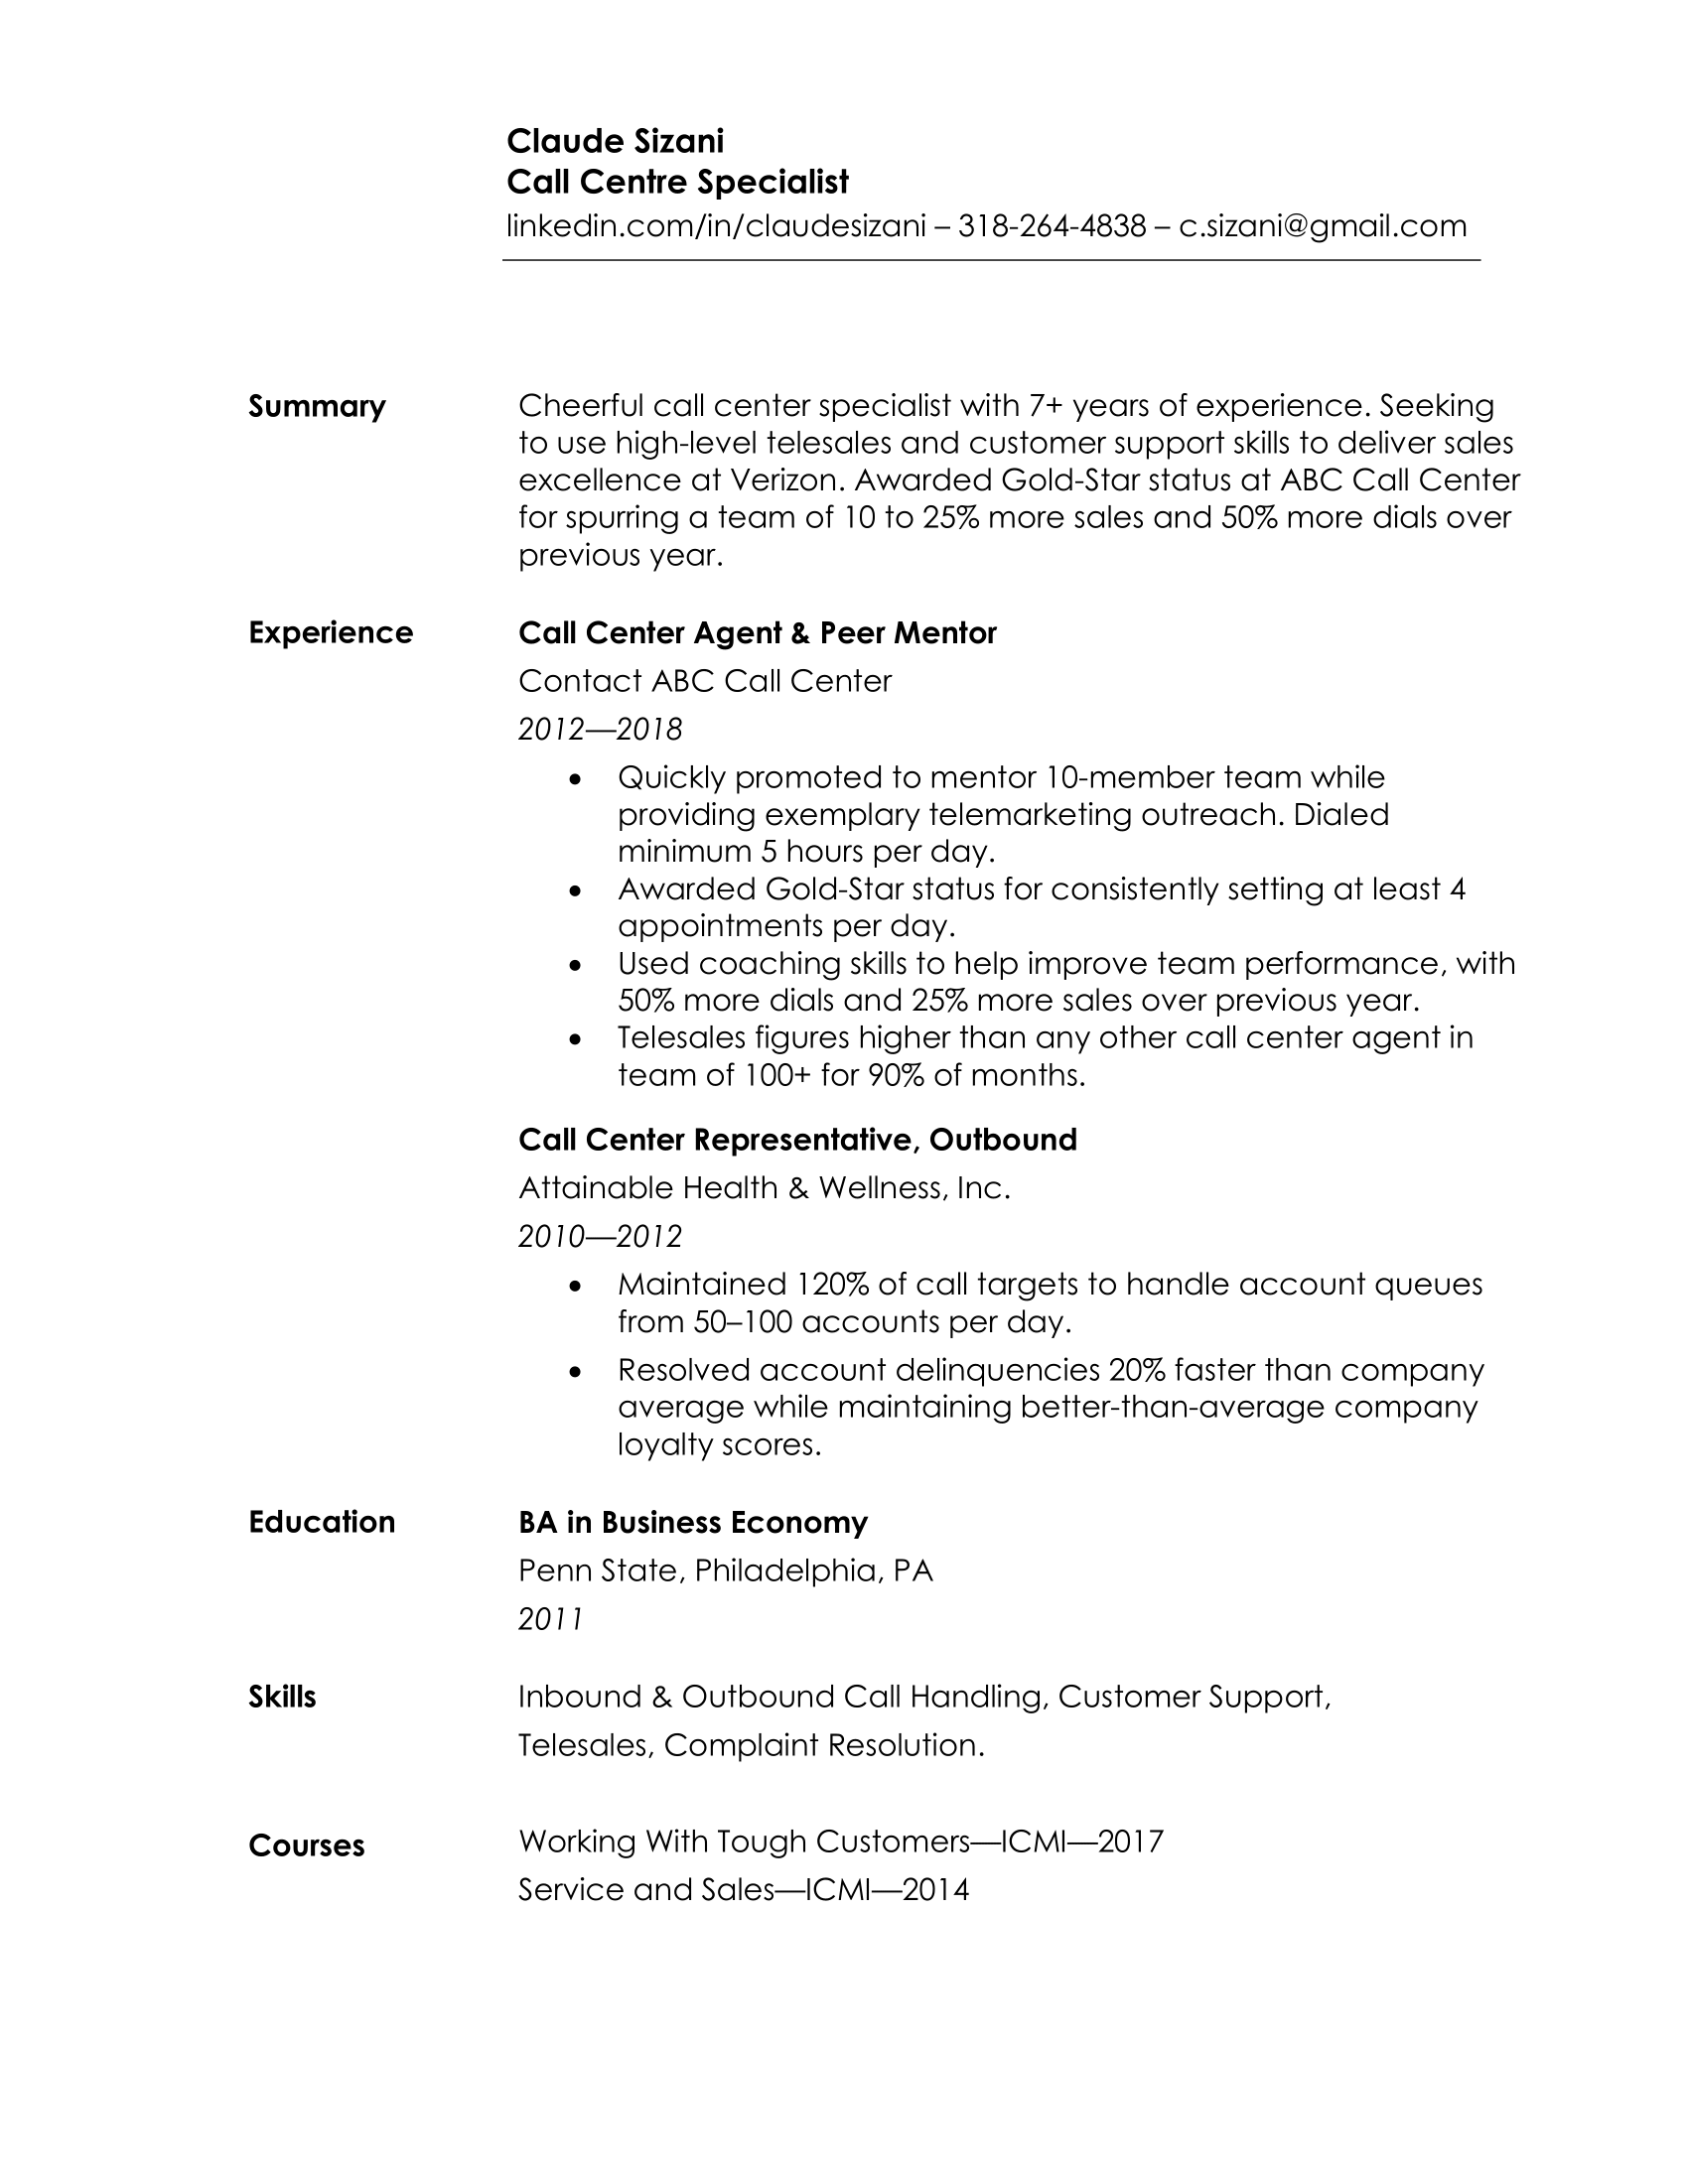 Best Resume Format For A Professional Resume In 2021